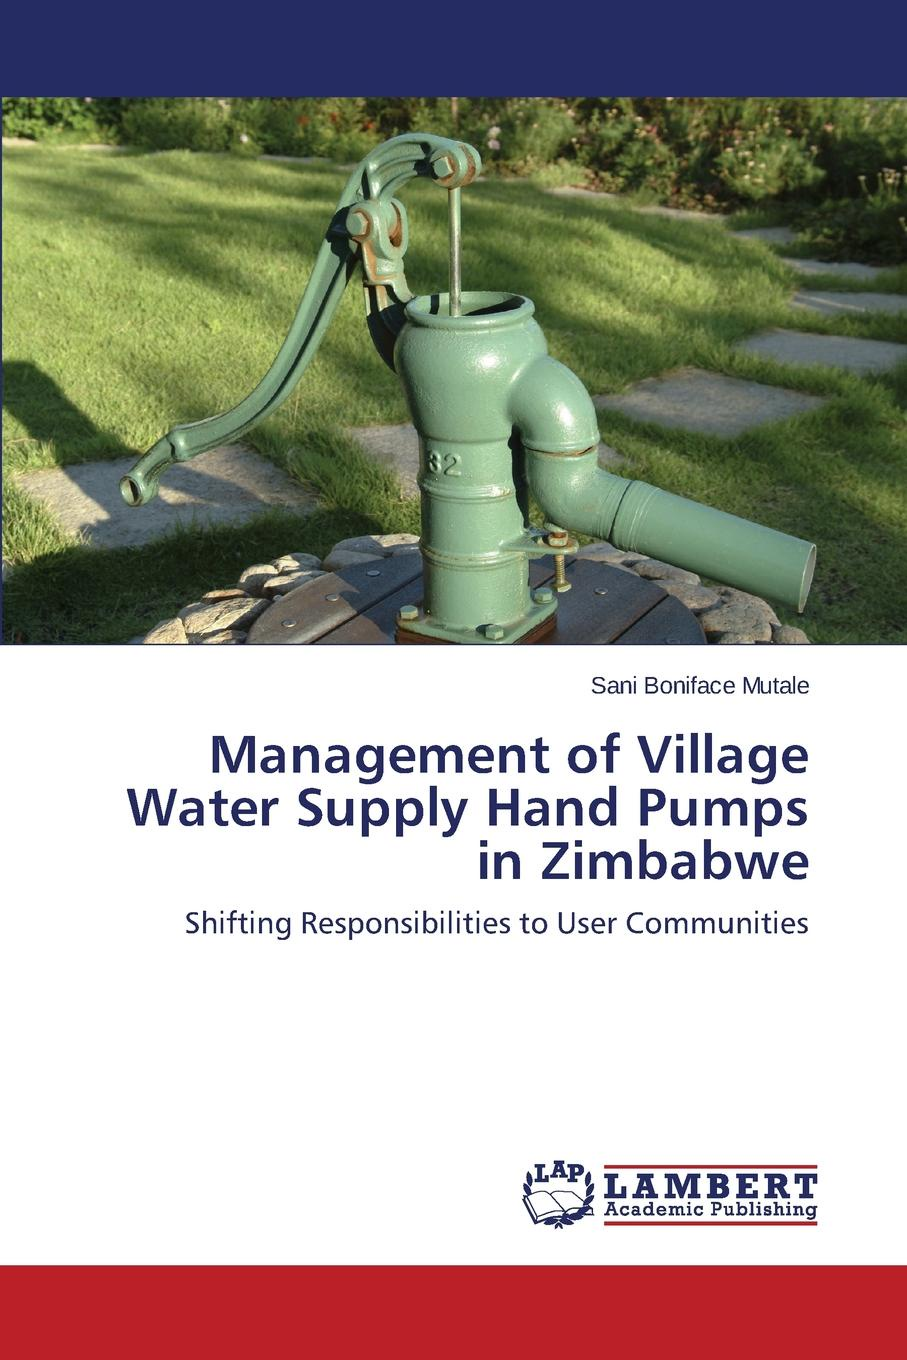 Mutale Sani Boniface Management of Village Water Supply Hand Pumps in Zimbabwe harji damji rank water management research for cotton